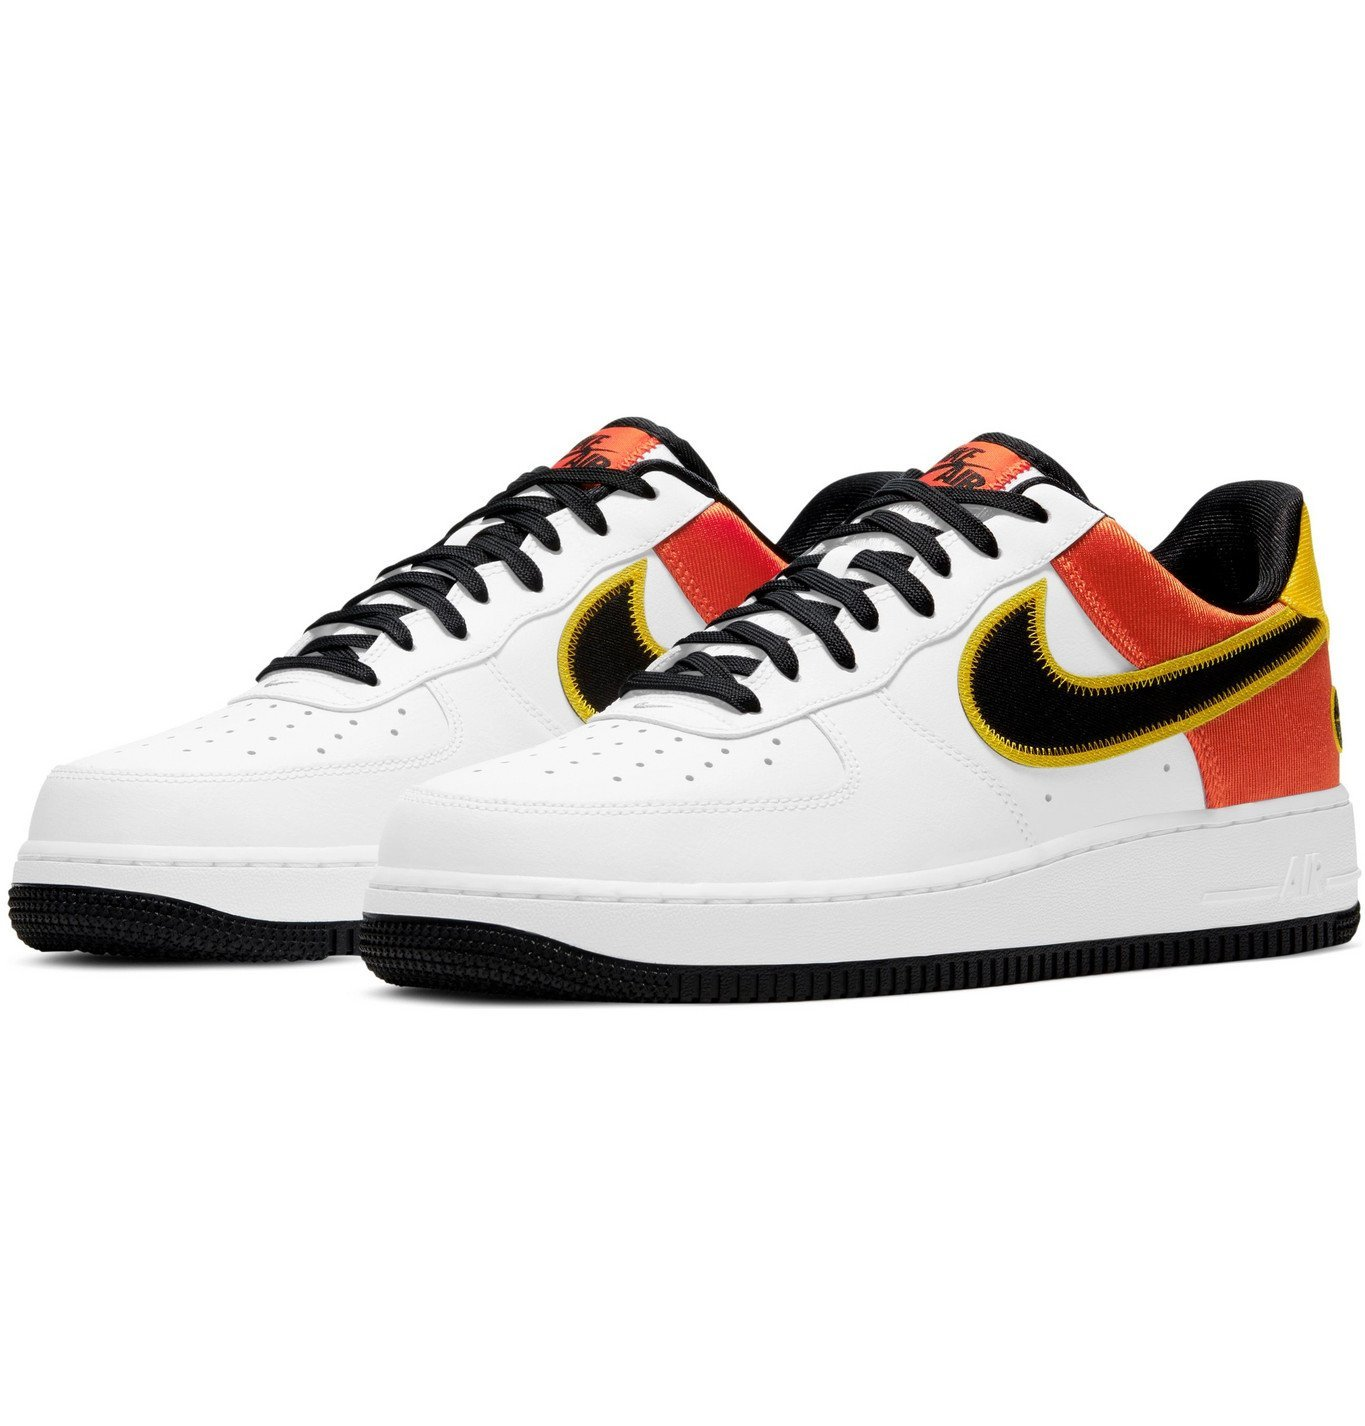 Photo: NIKE - Air Force 1 07 LV8 Rayguns Satin-Trimmed Leather Sneakers - White